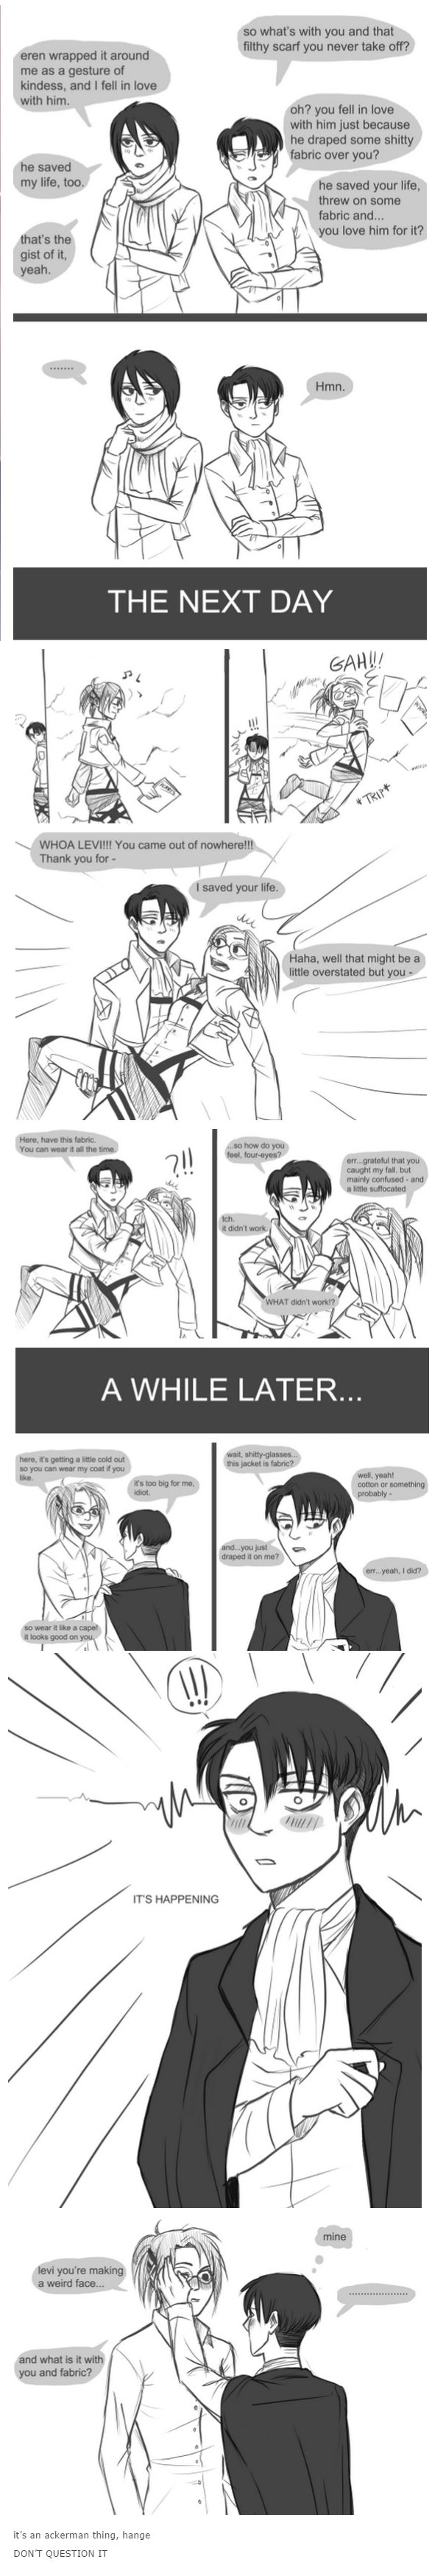 Pin by Melissa Ortiz on LEVIHAN COMICS | Attack on titan